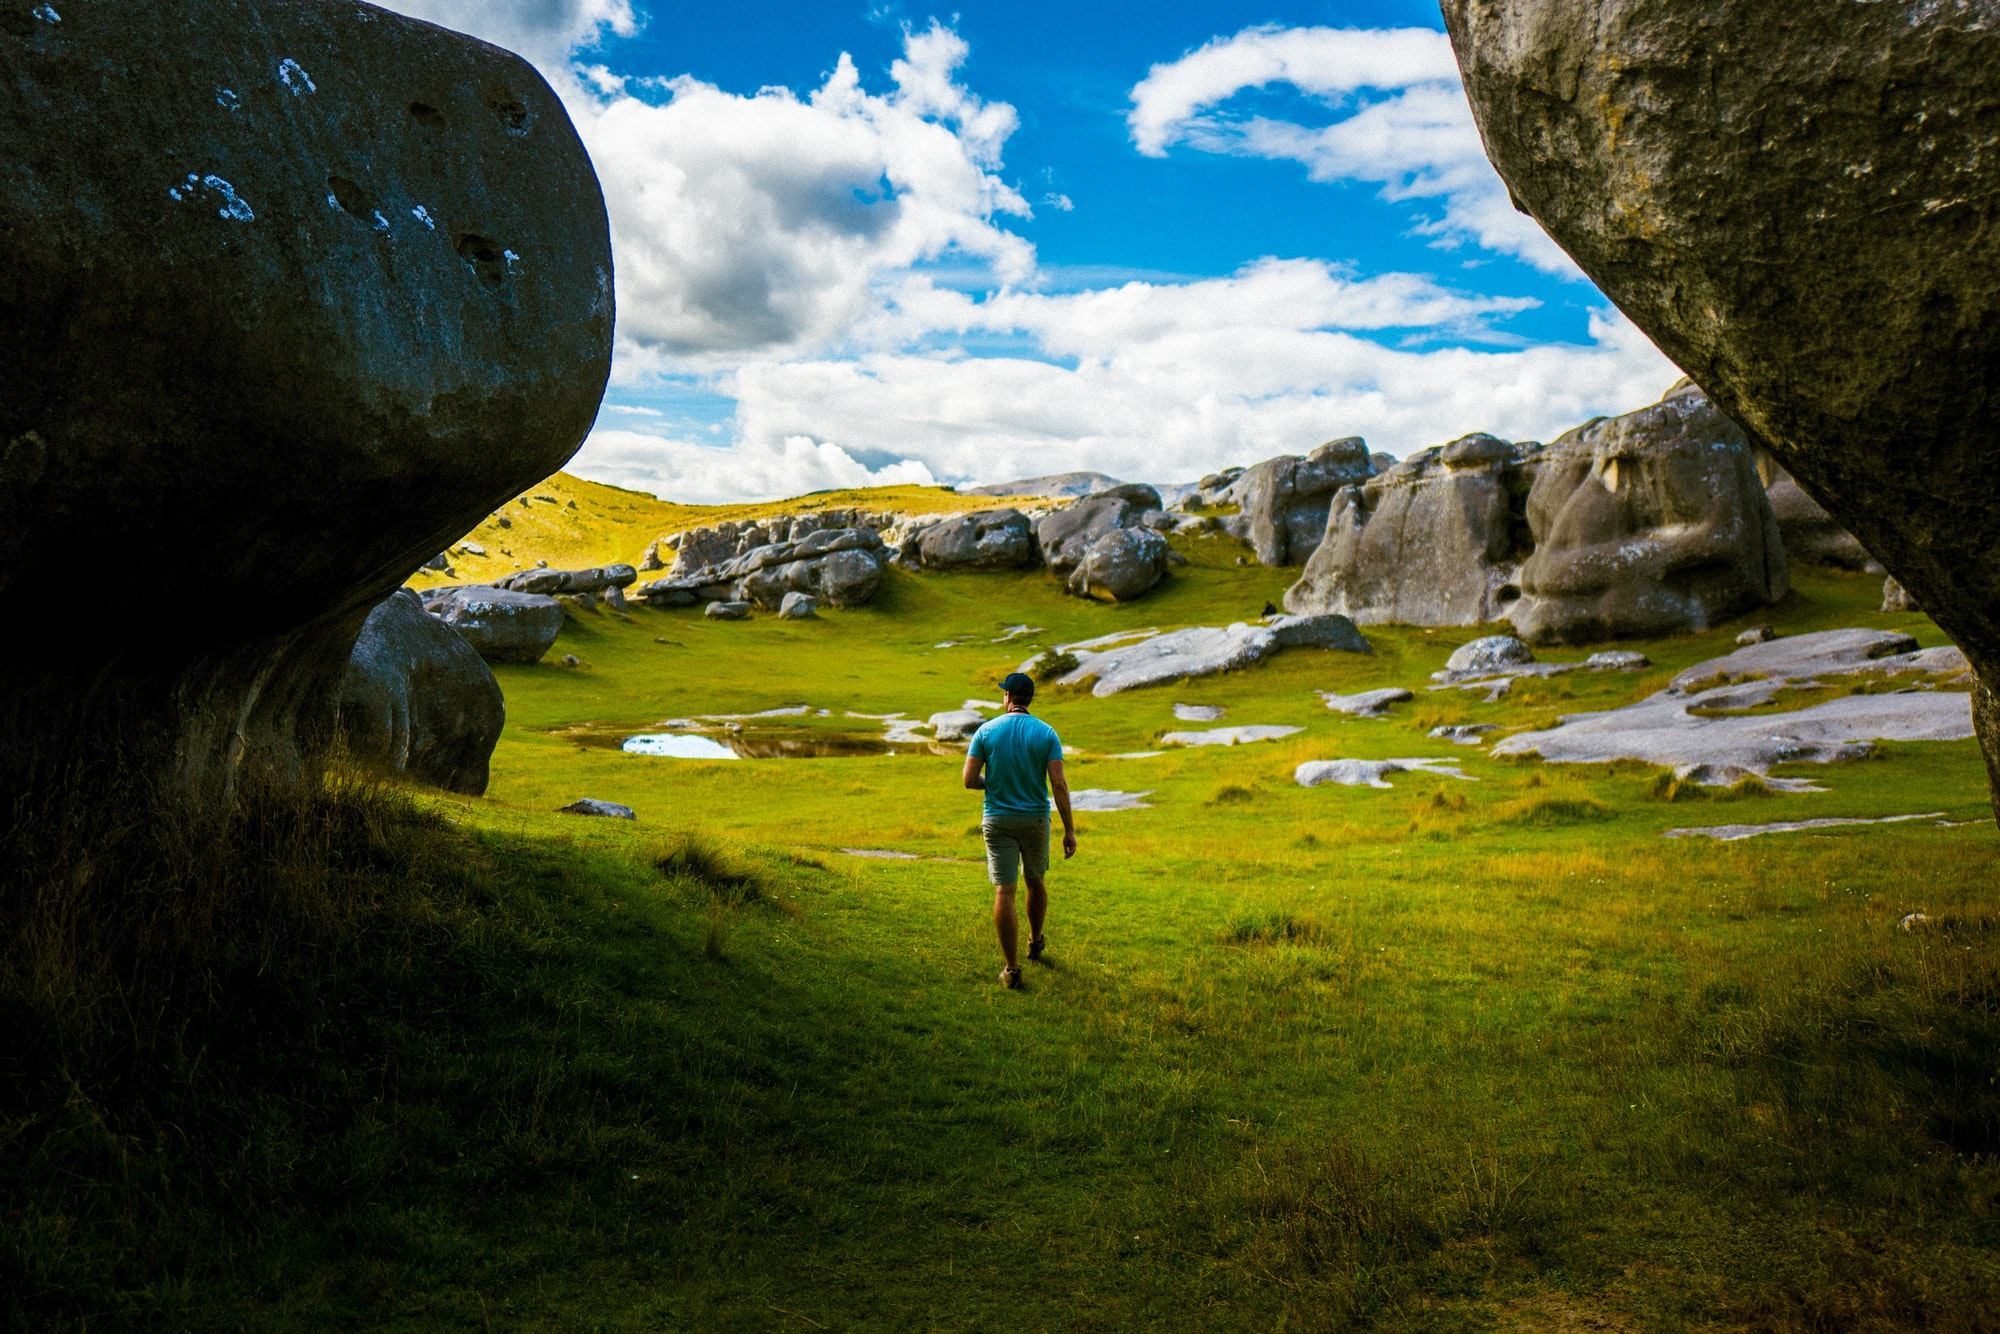 My friend, Tyler, wandering amongst the natural beauty of Castle Hill, New Zealand